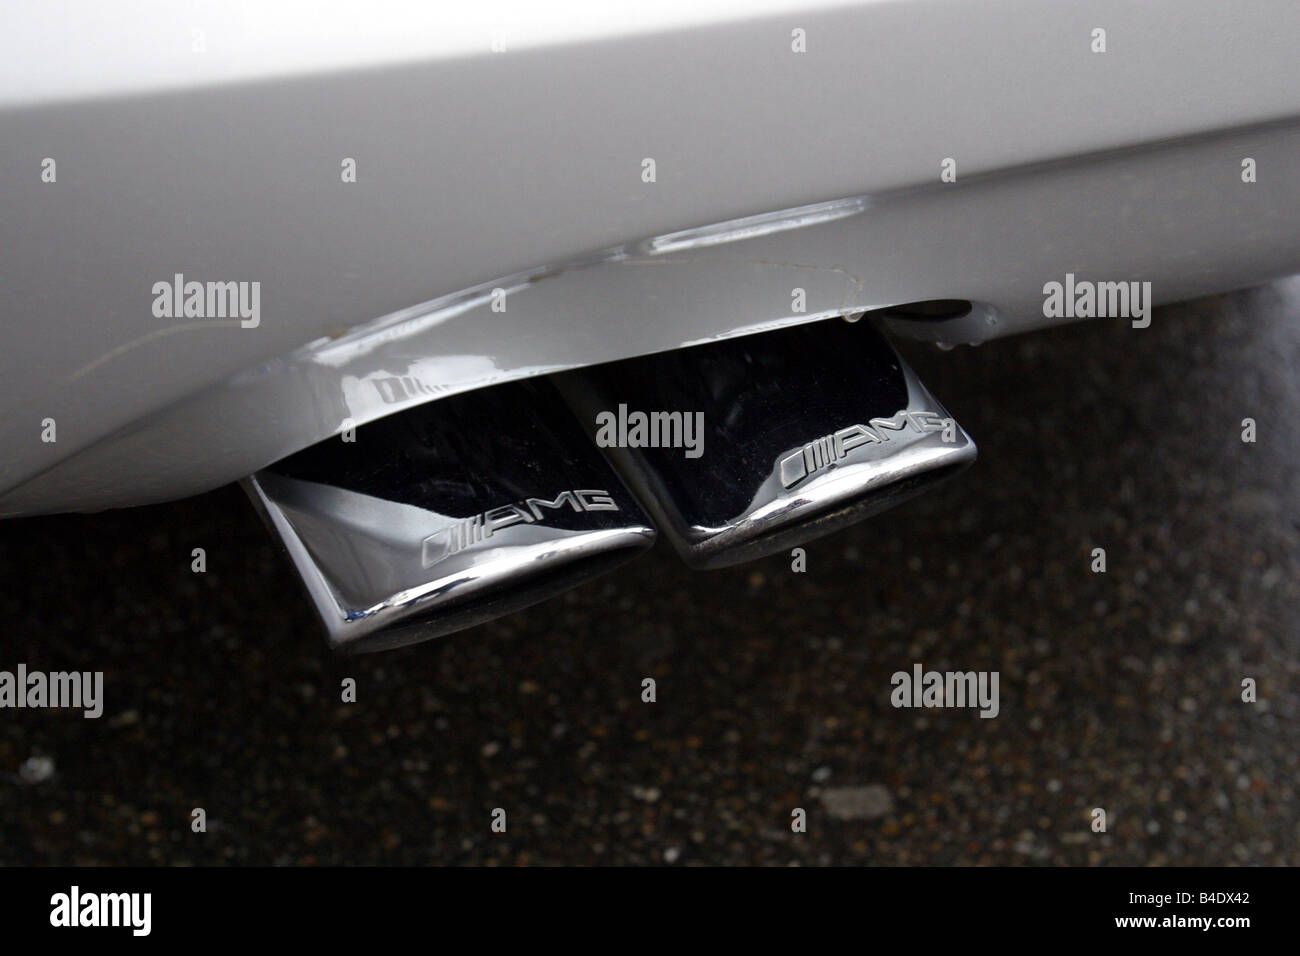 Car, Mercedes C 30 CDI AMG, model year 2002, silver, medium class, Tuning, 231 PS, Exhaust, technique/accessory, - Stock Image